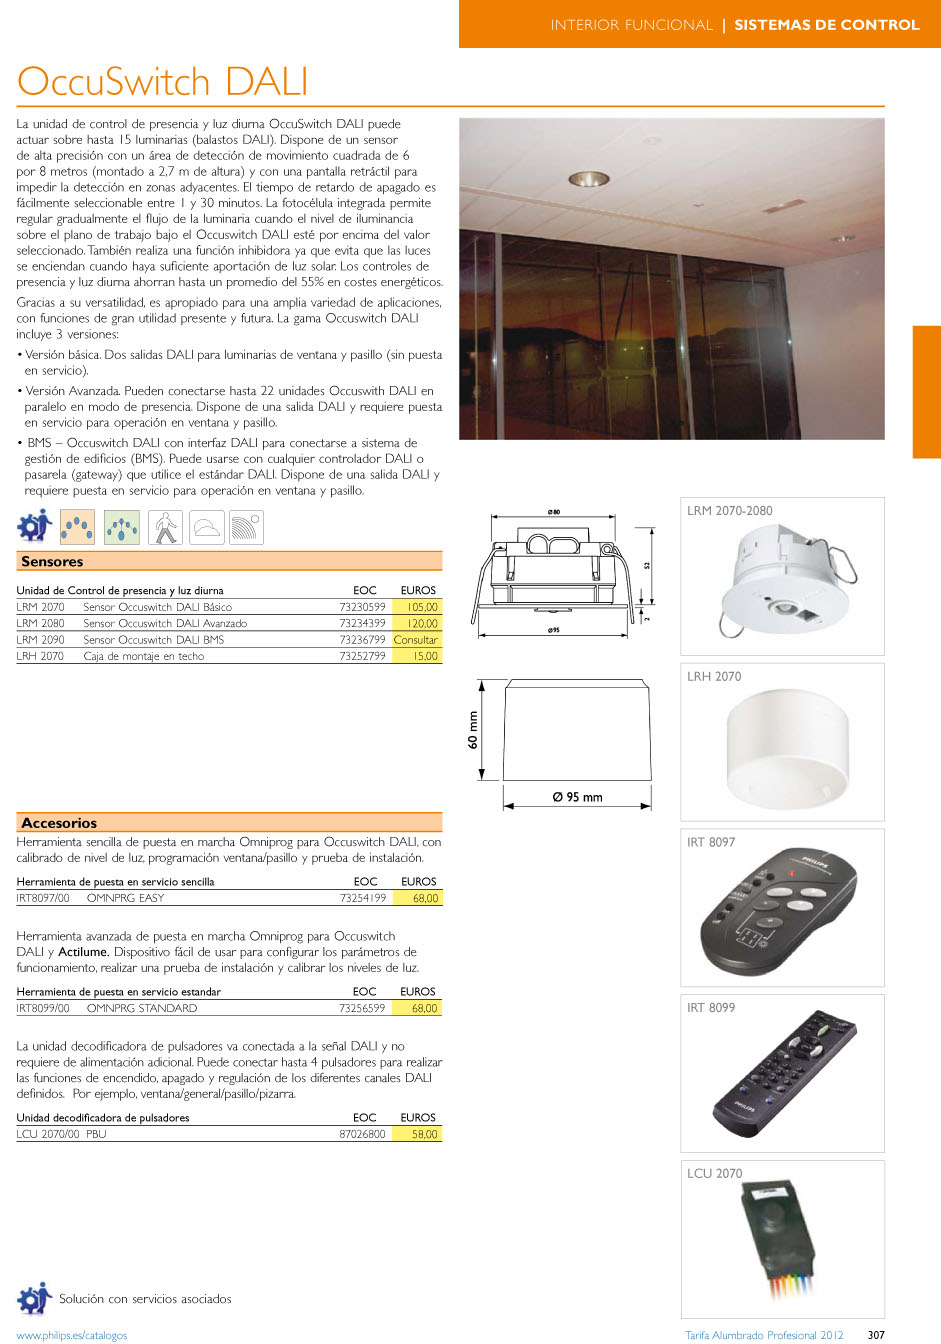 Occuswitch dali LRH 2070 box of montaje en Ceiling